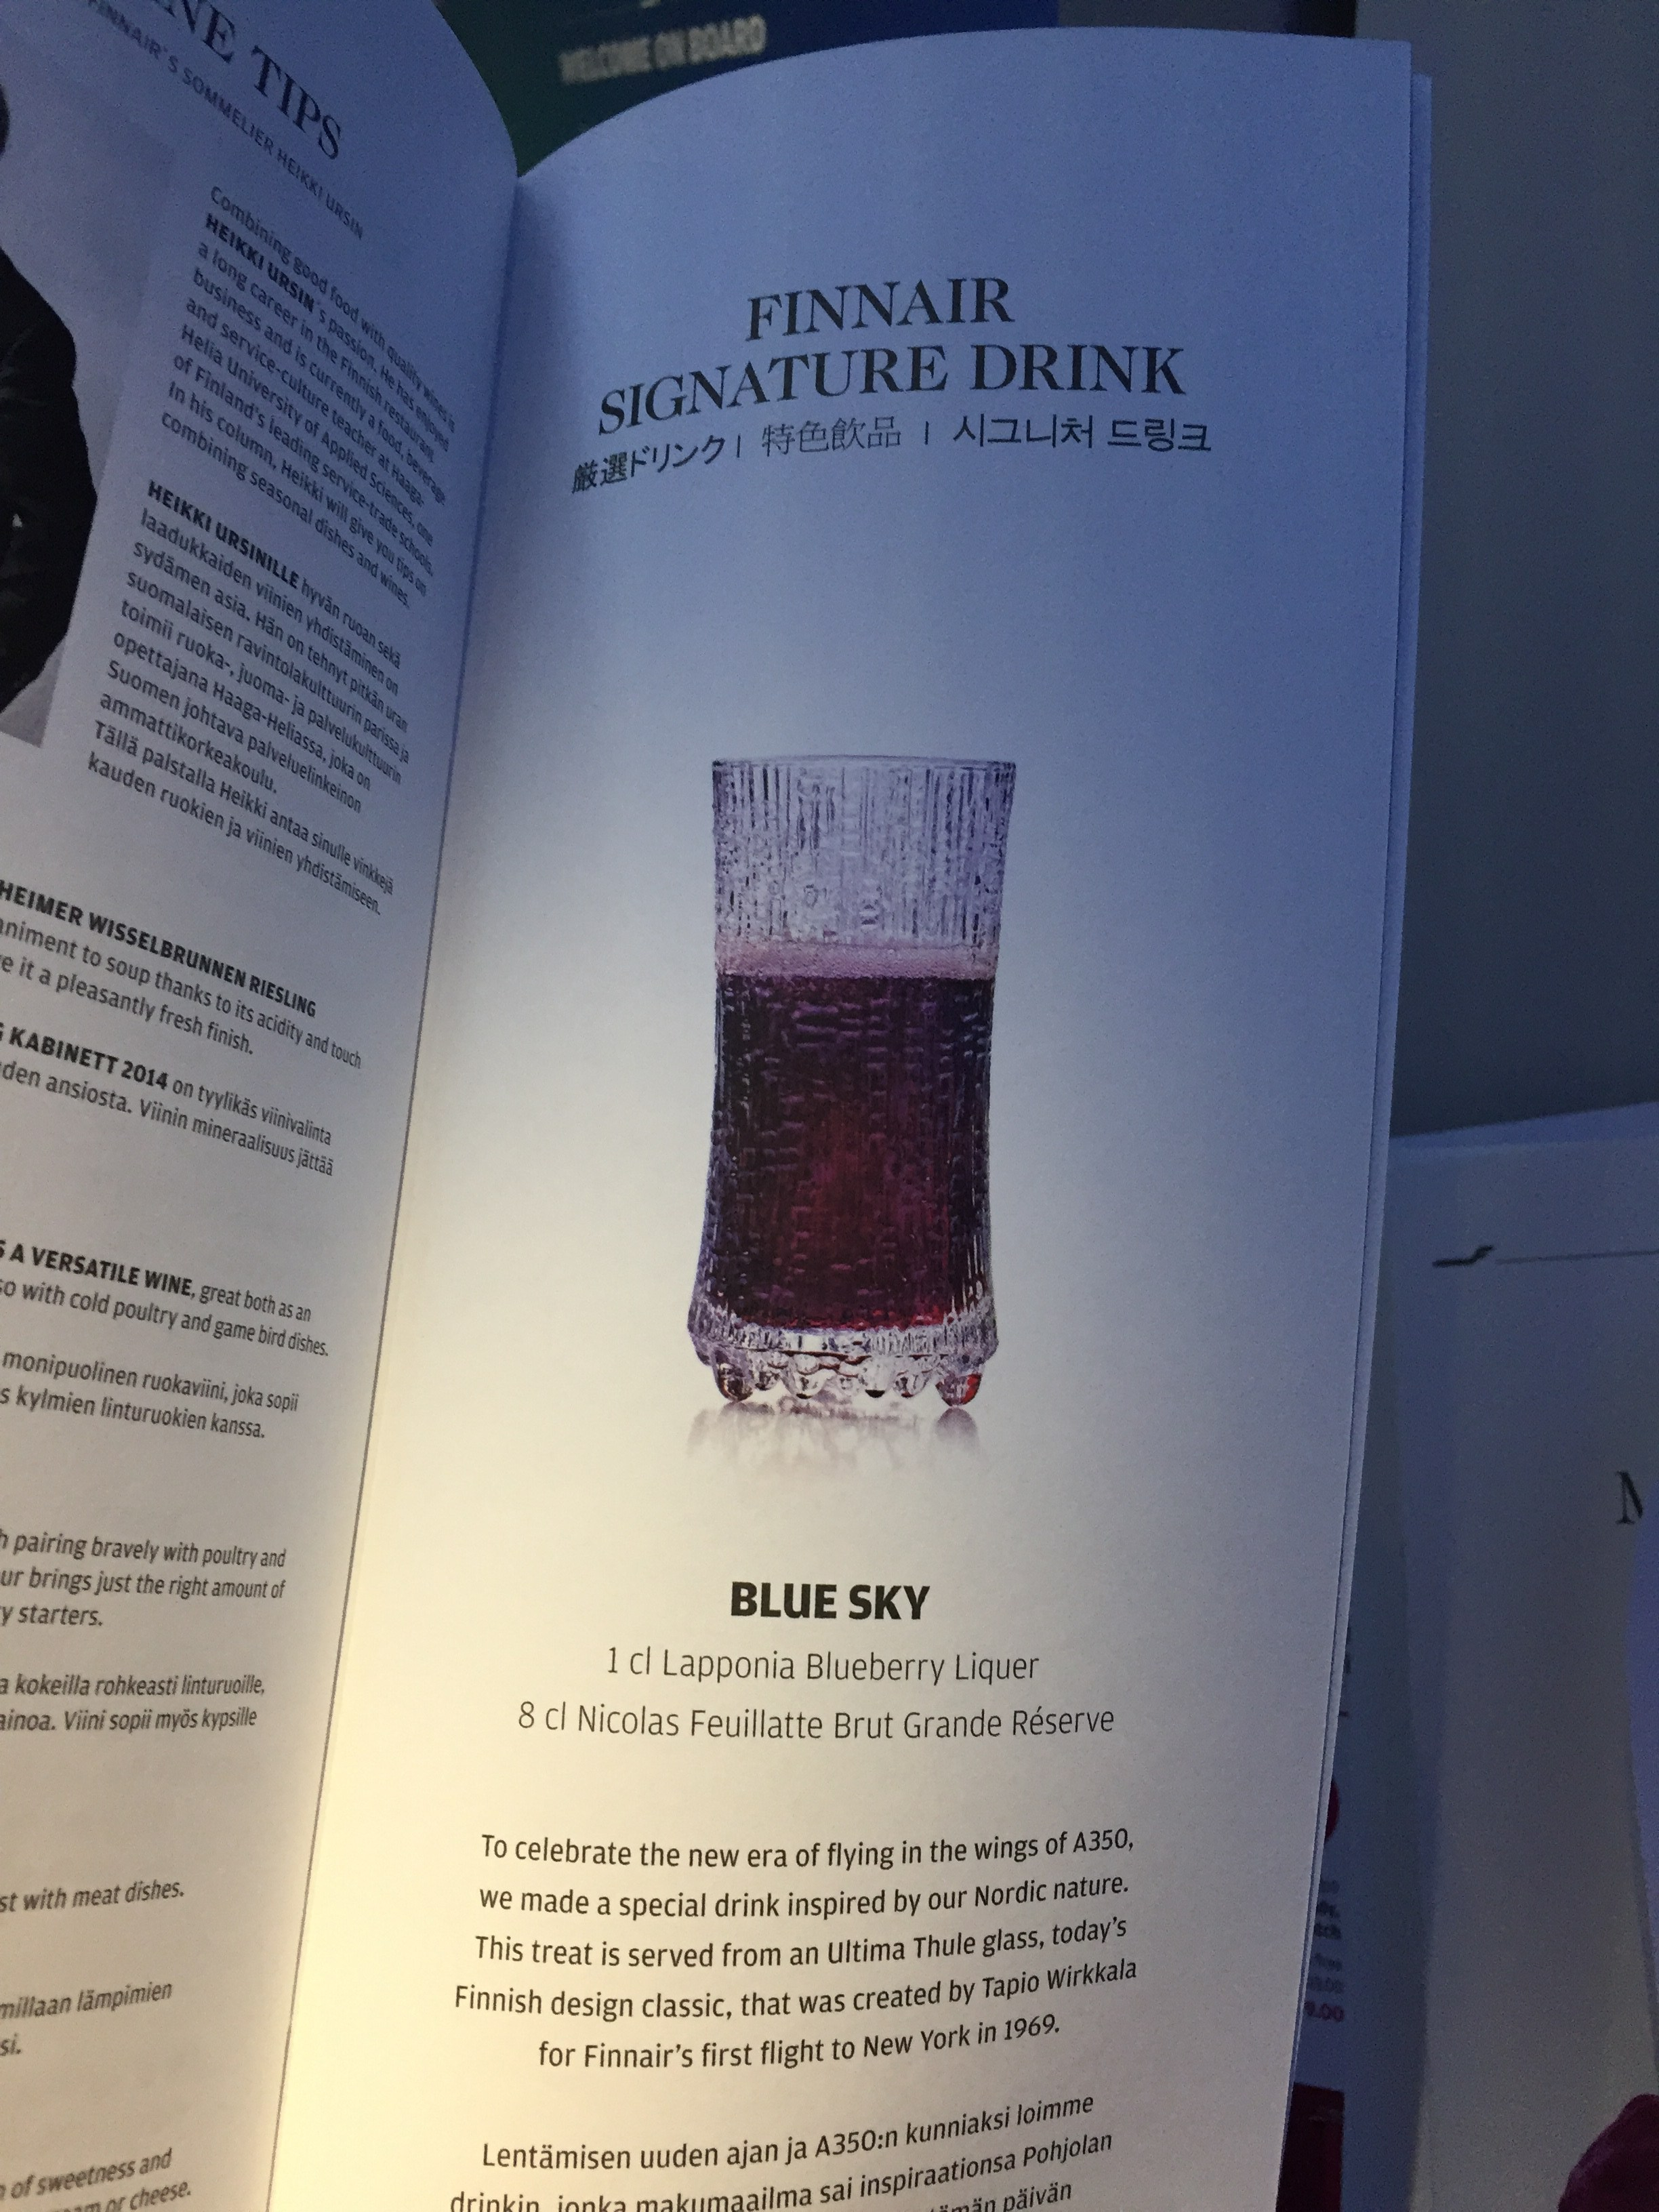 As an anecdote, Finnair has also developed a cocktail of its own for A350 passengers, based on a mix of Finnish Lapponia liquor and French champagne